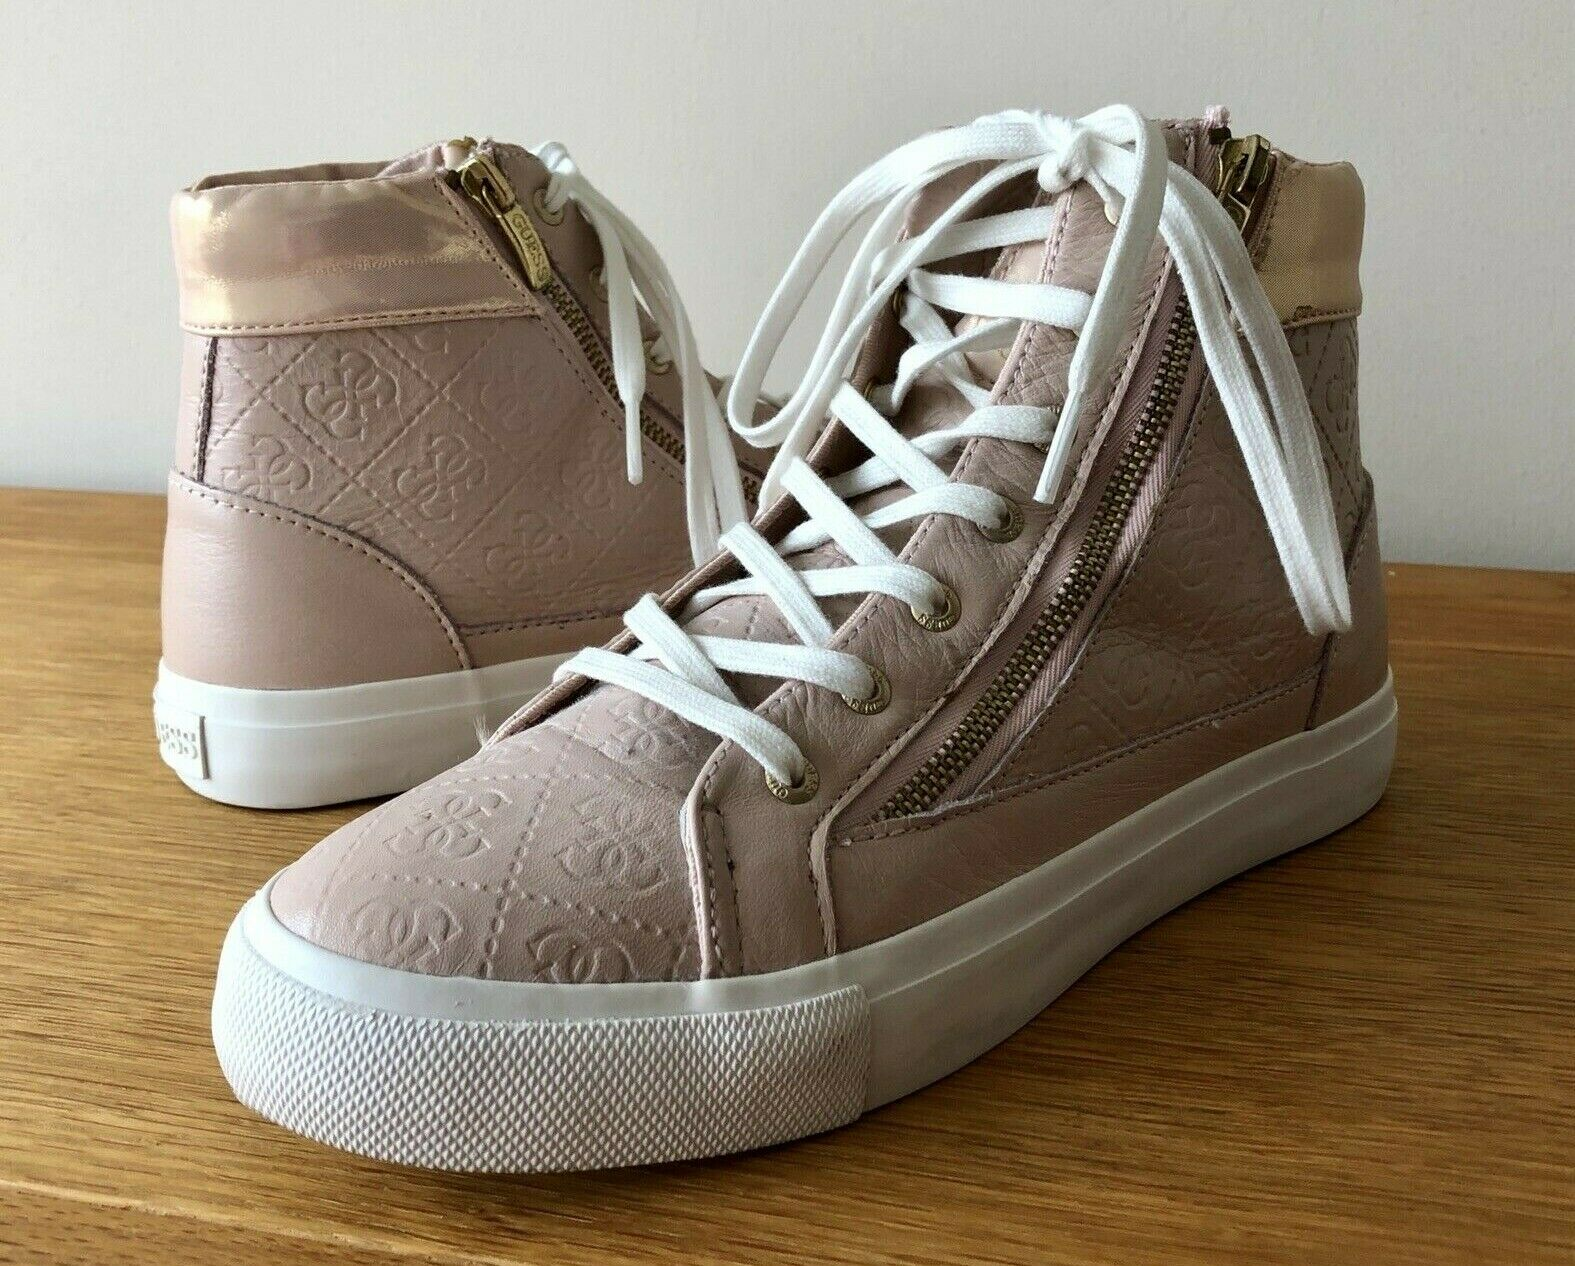 GUESS LOS ANGELES 1981 WOMENS NIKO 4G LOGO SNEAKERS TRAINERS pink UK SIZE 6